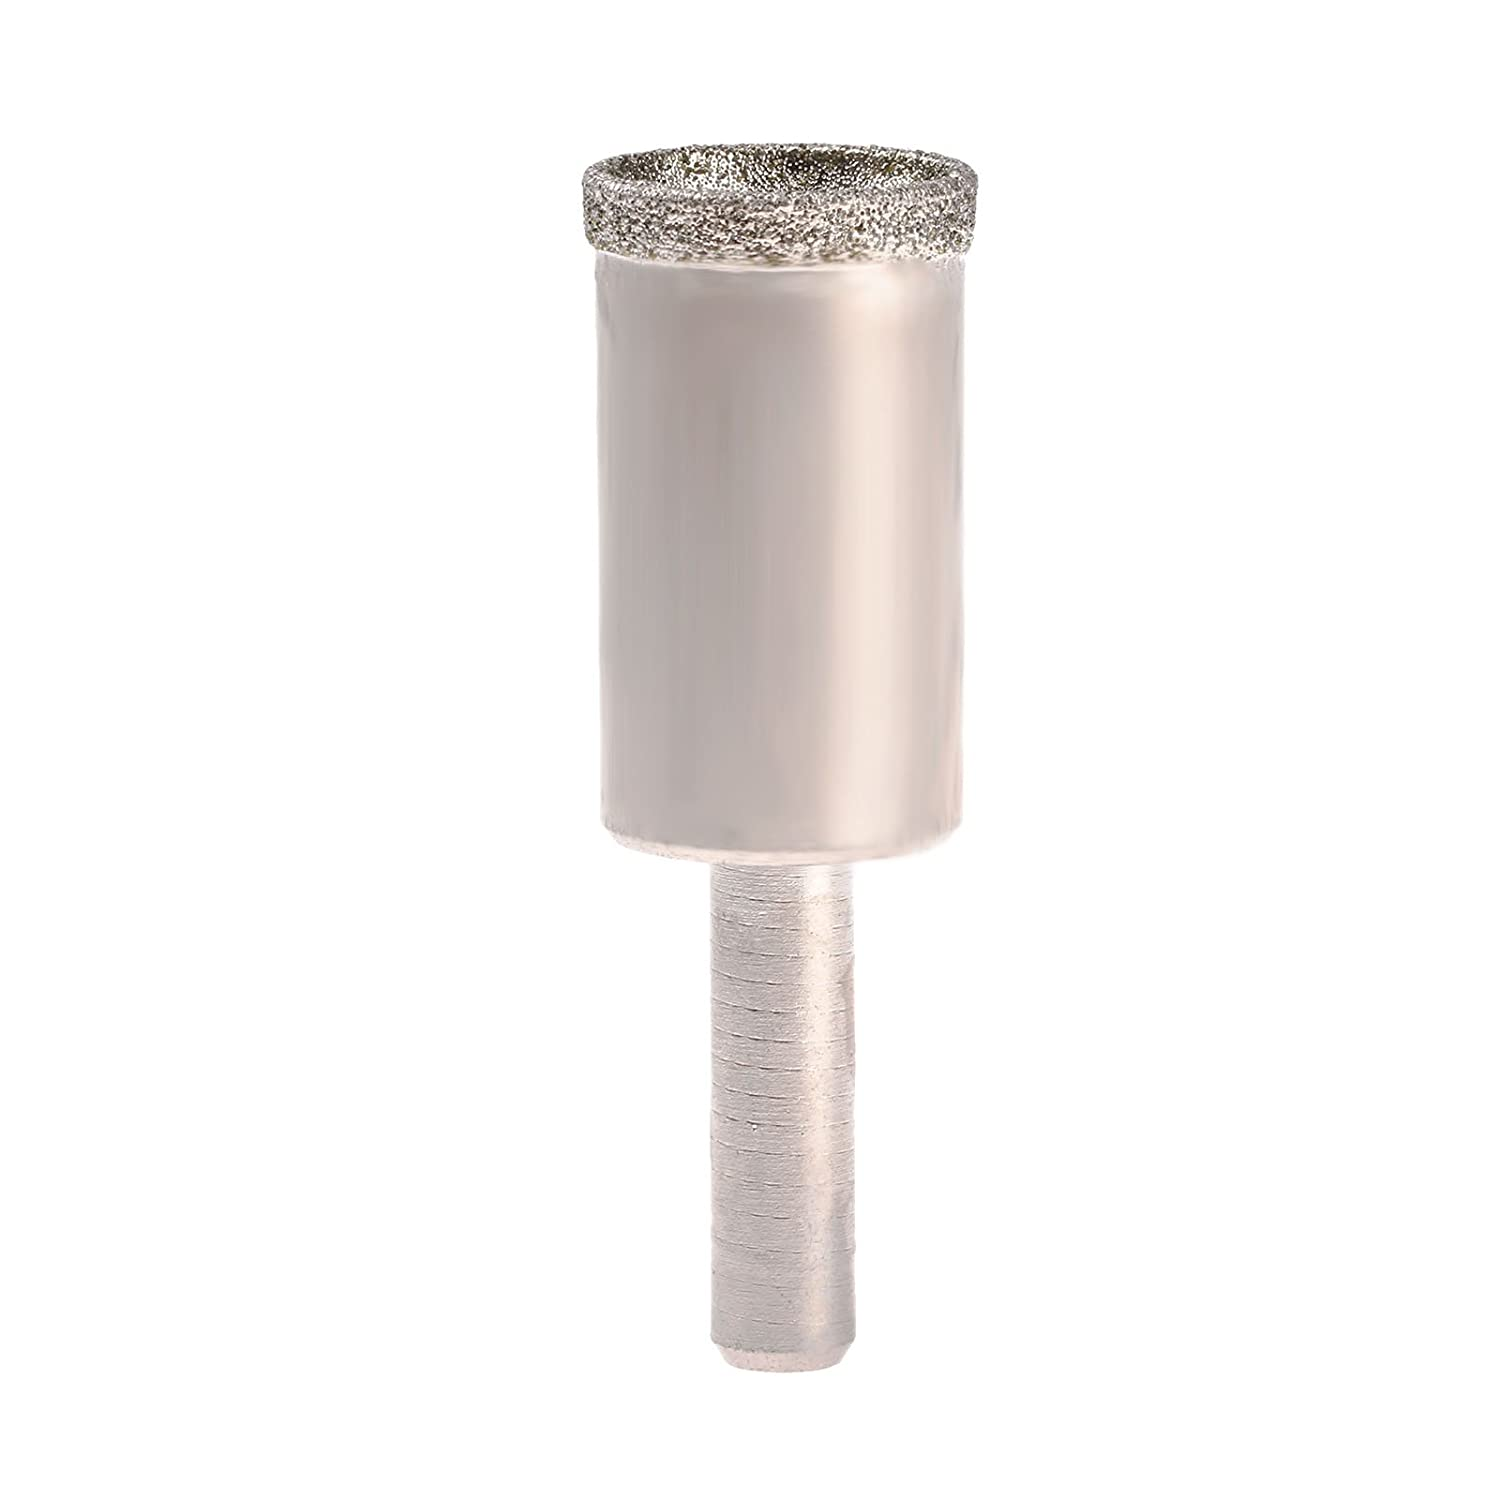 Head Diameter 15MM Spherical Concave Head Shank Coarse Sand Grinding Diamond Mounted Point Bit